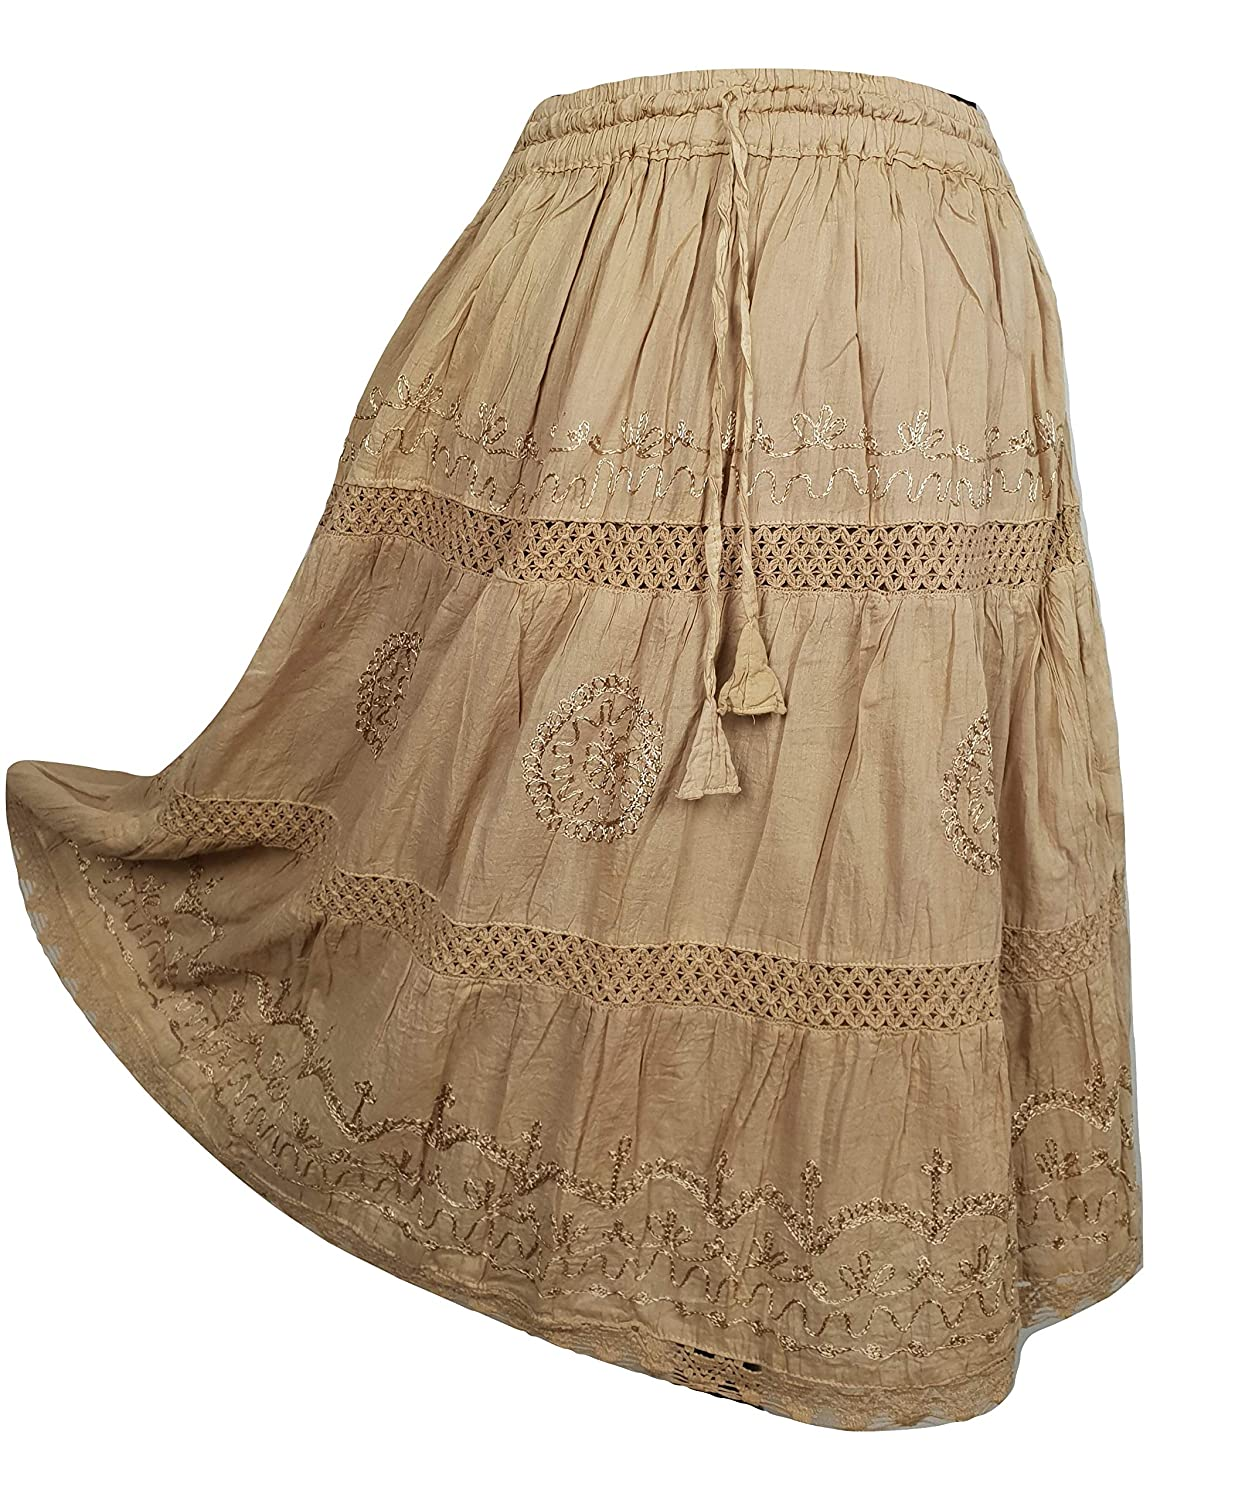 Cotton Summer Skirt Midi Boho Hippie Crochet Lace Tiered One Size 10 12 14 16 18